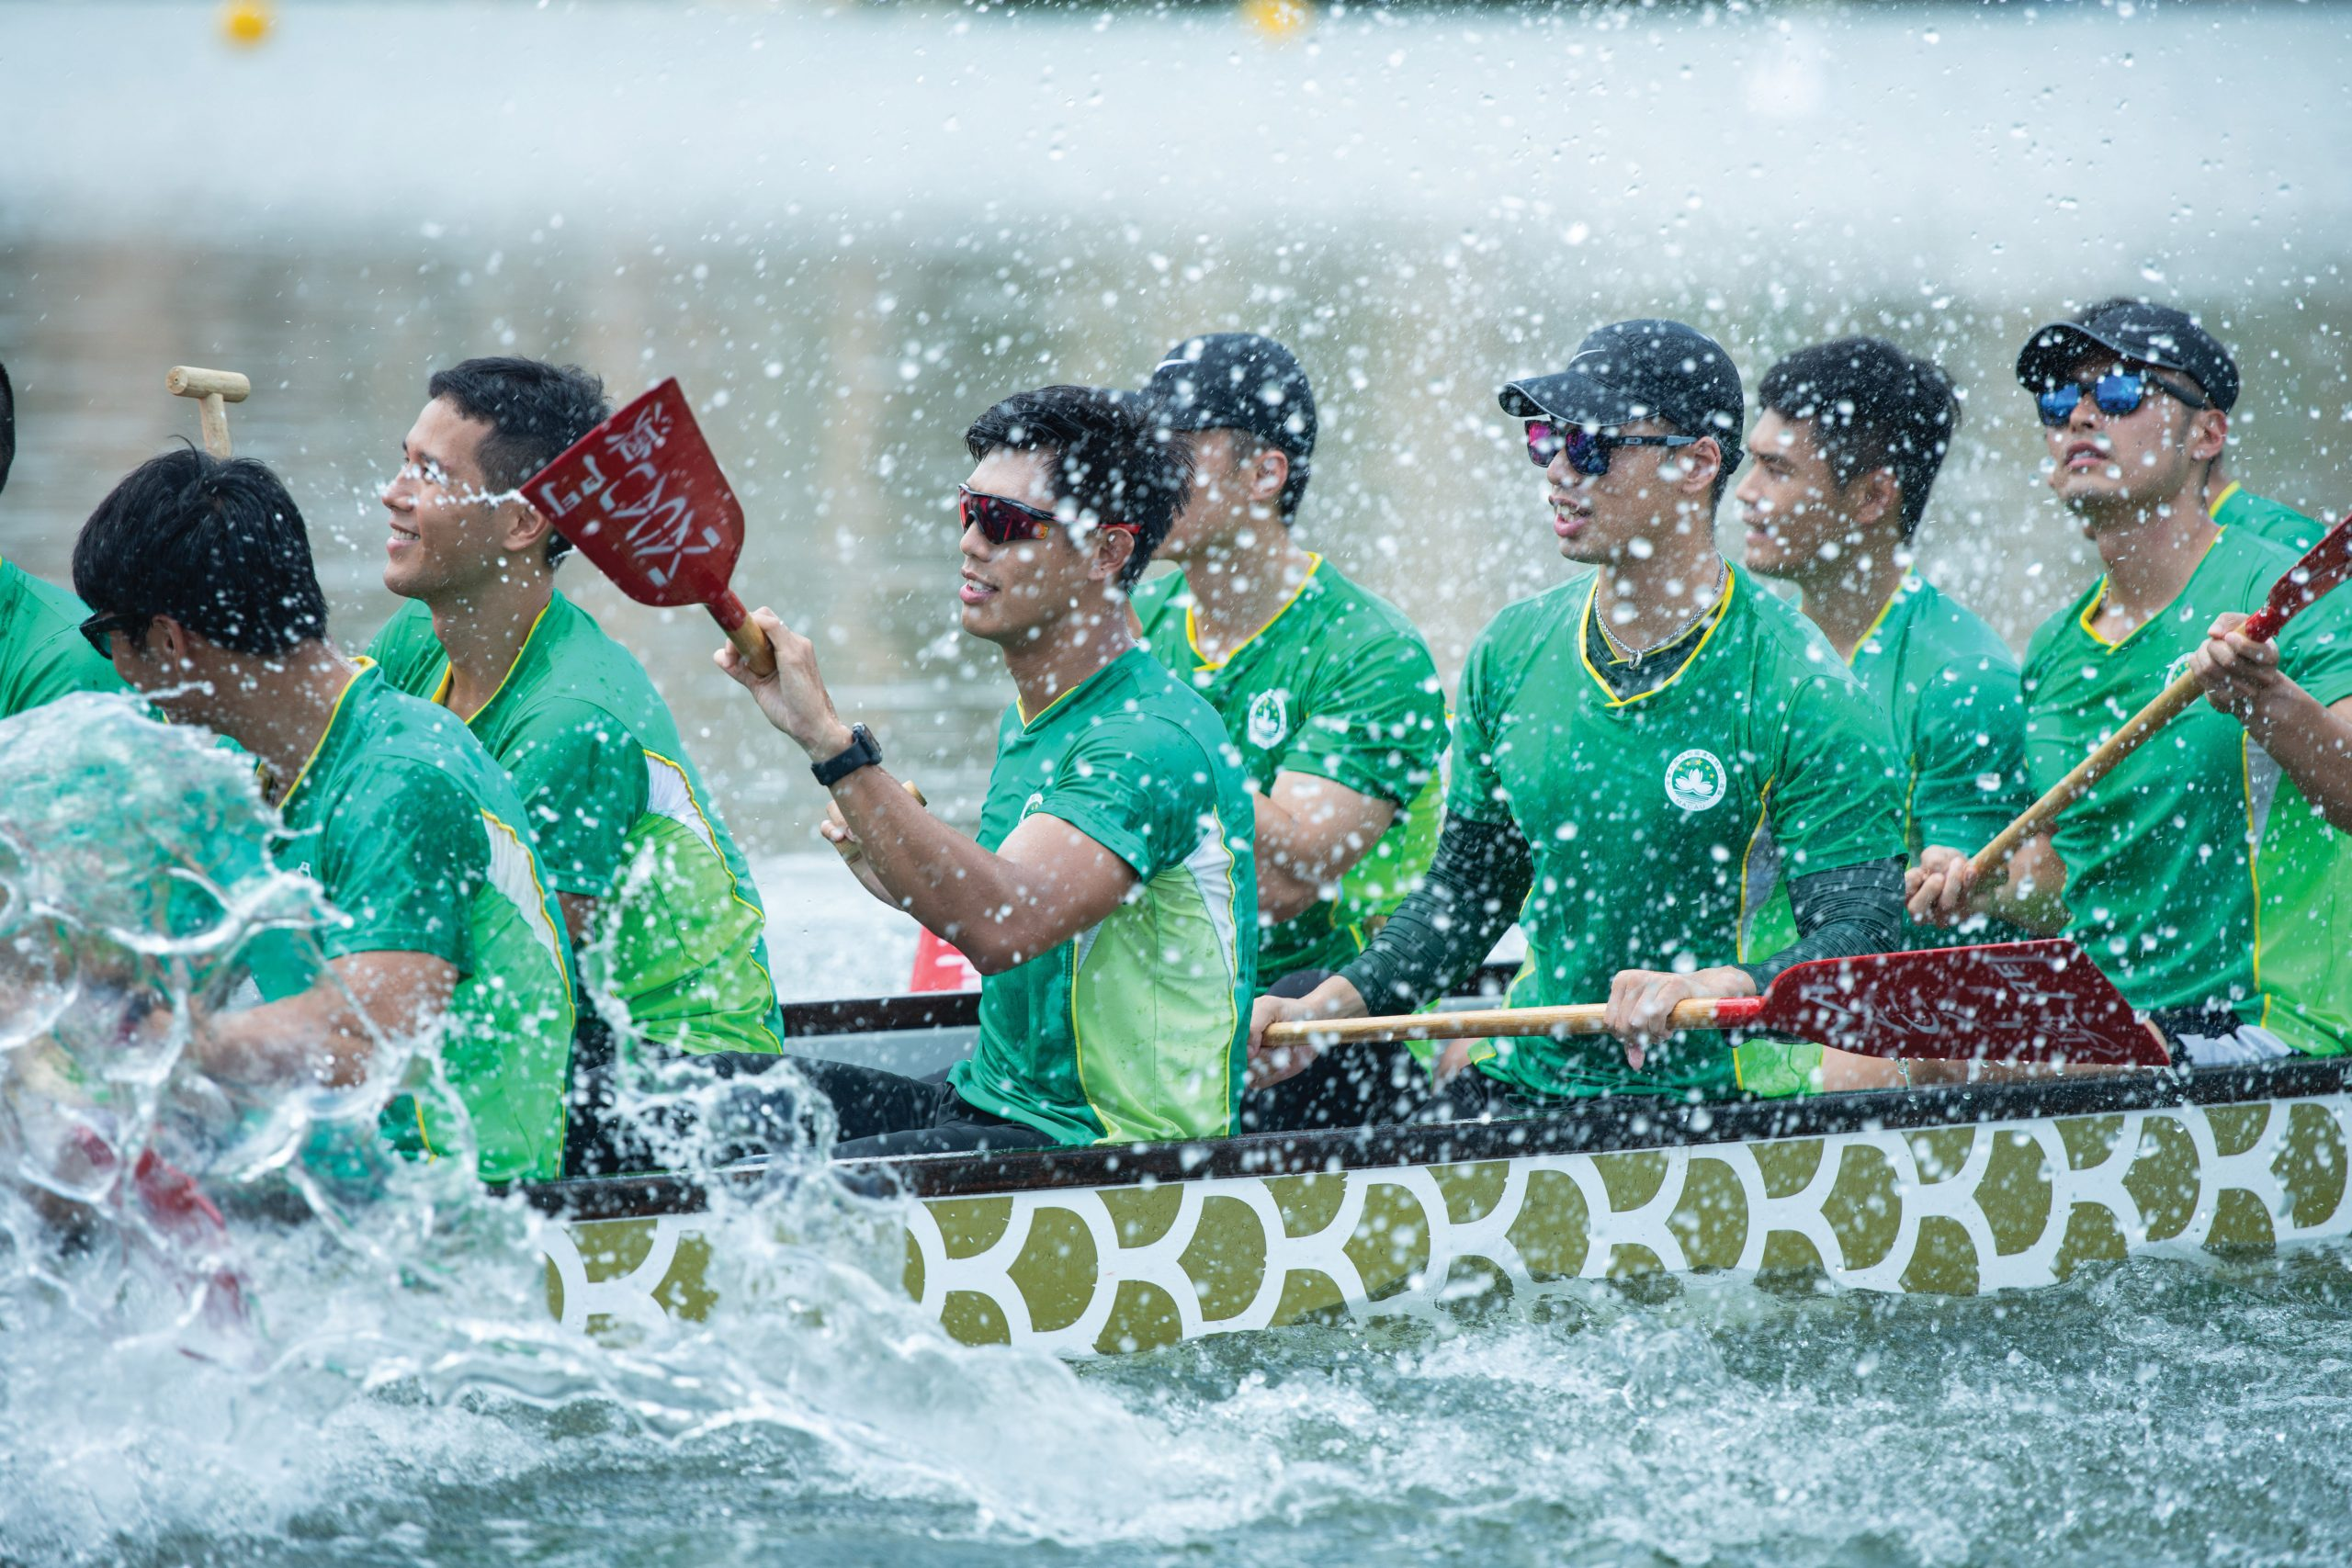 Dragon boat racing is one of the new additions to Macao's inventory of intangible heritage - Photo by António Sanmarful